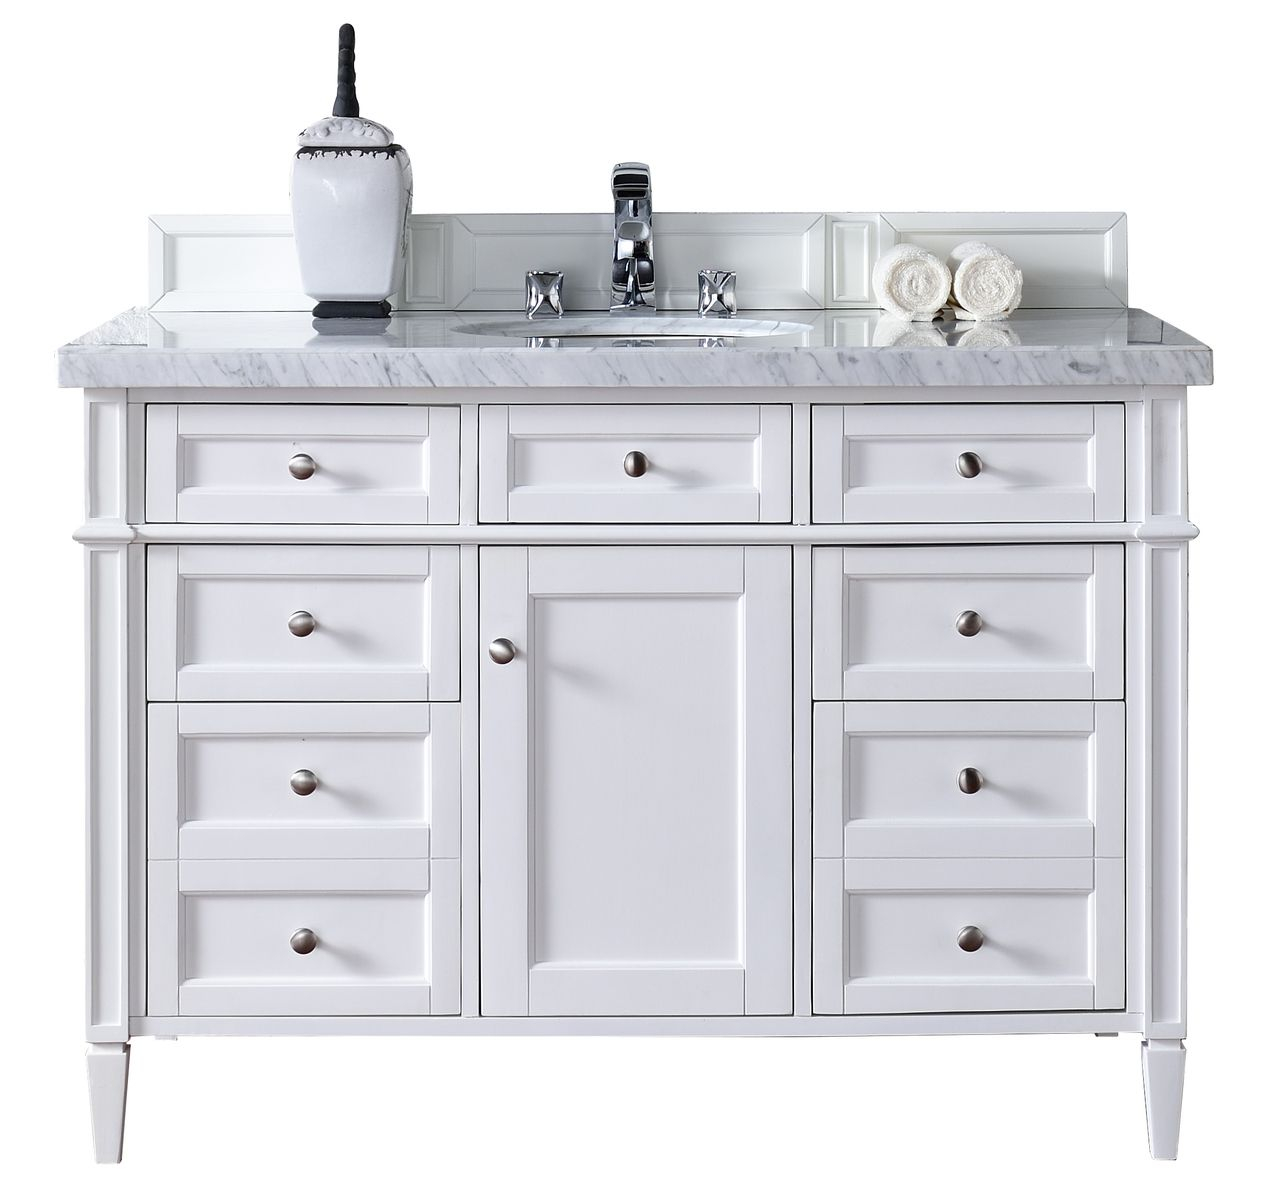 Elite Pictures: 48 Bathroom Vanity No Top, - Longfabu with regard to Inspirational Bathroom Vanity No Sink